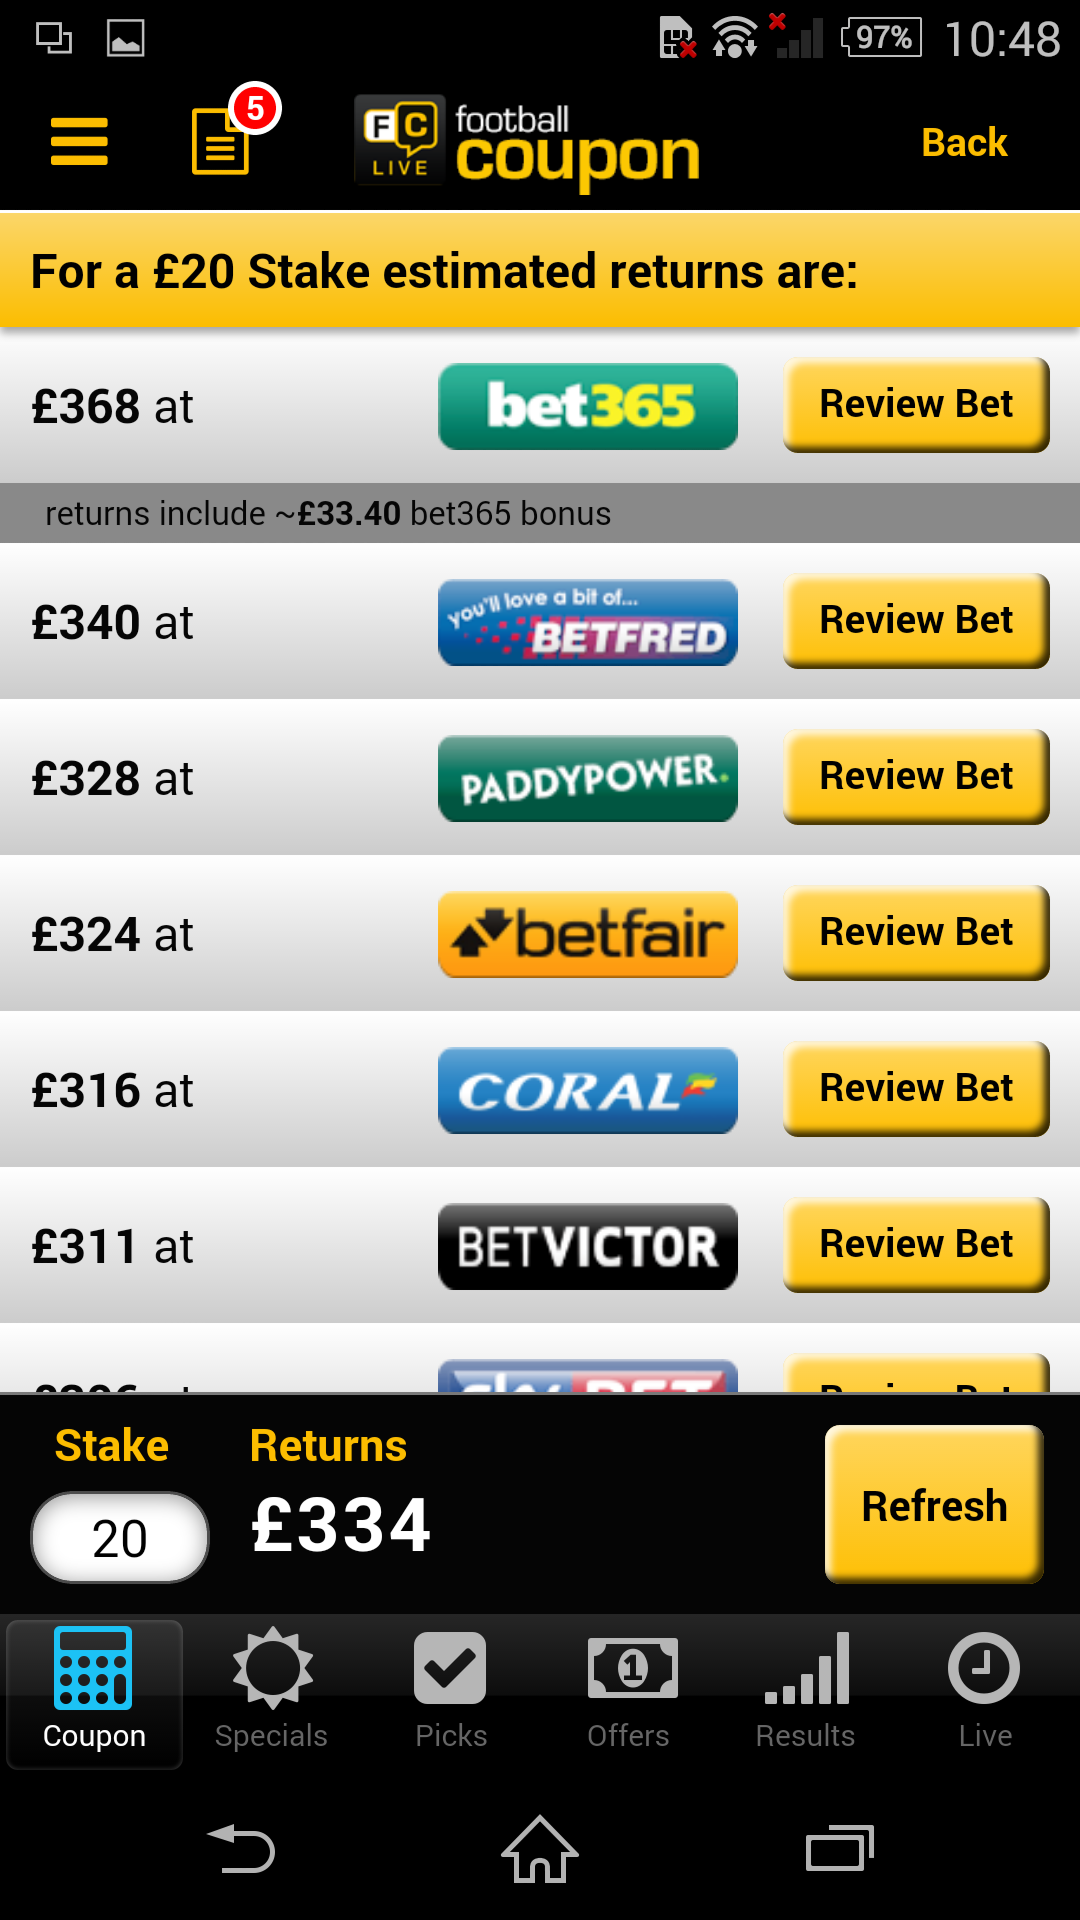 Football Coupon Betting